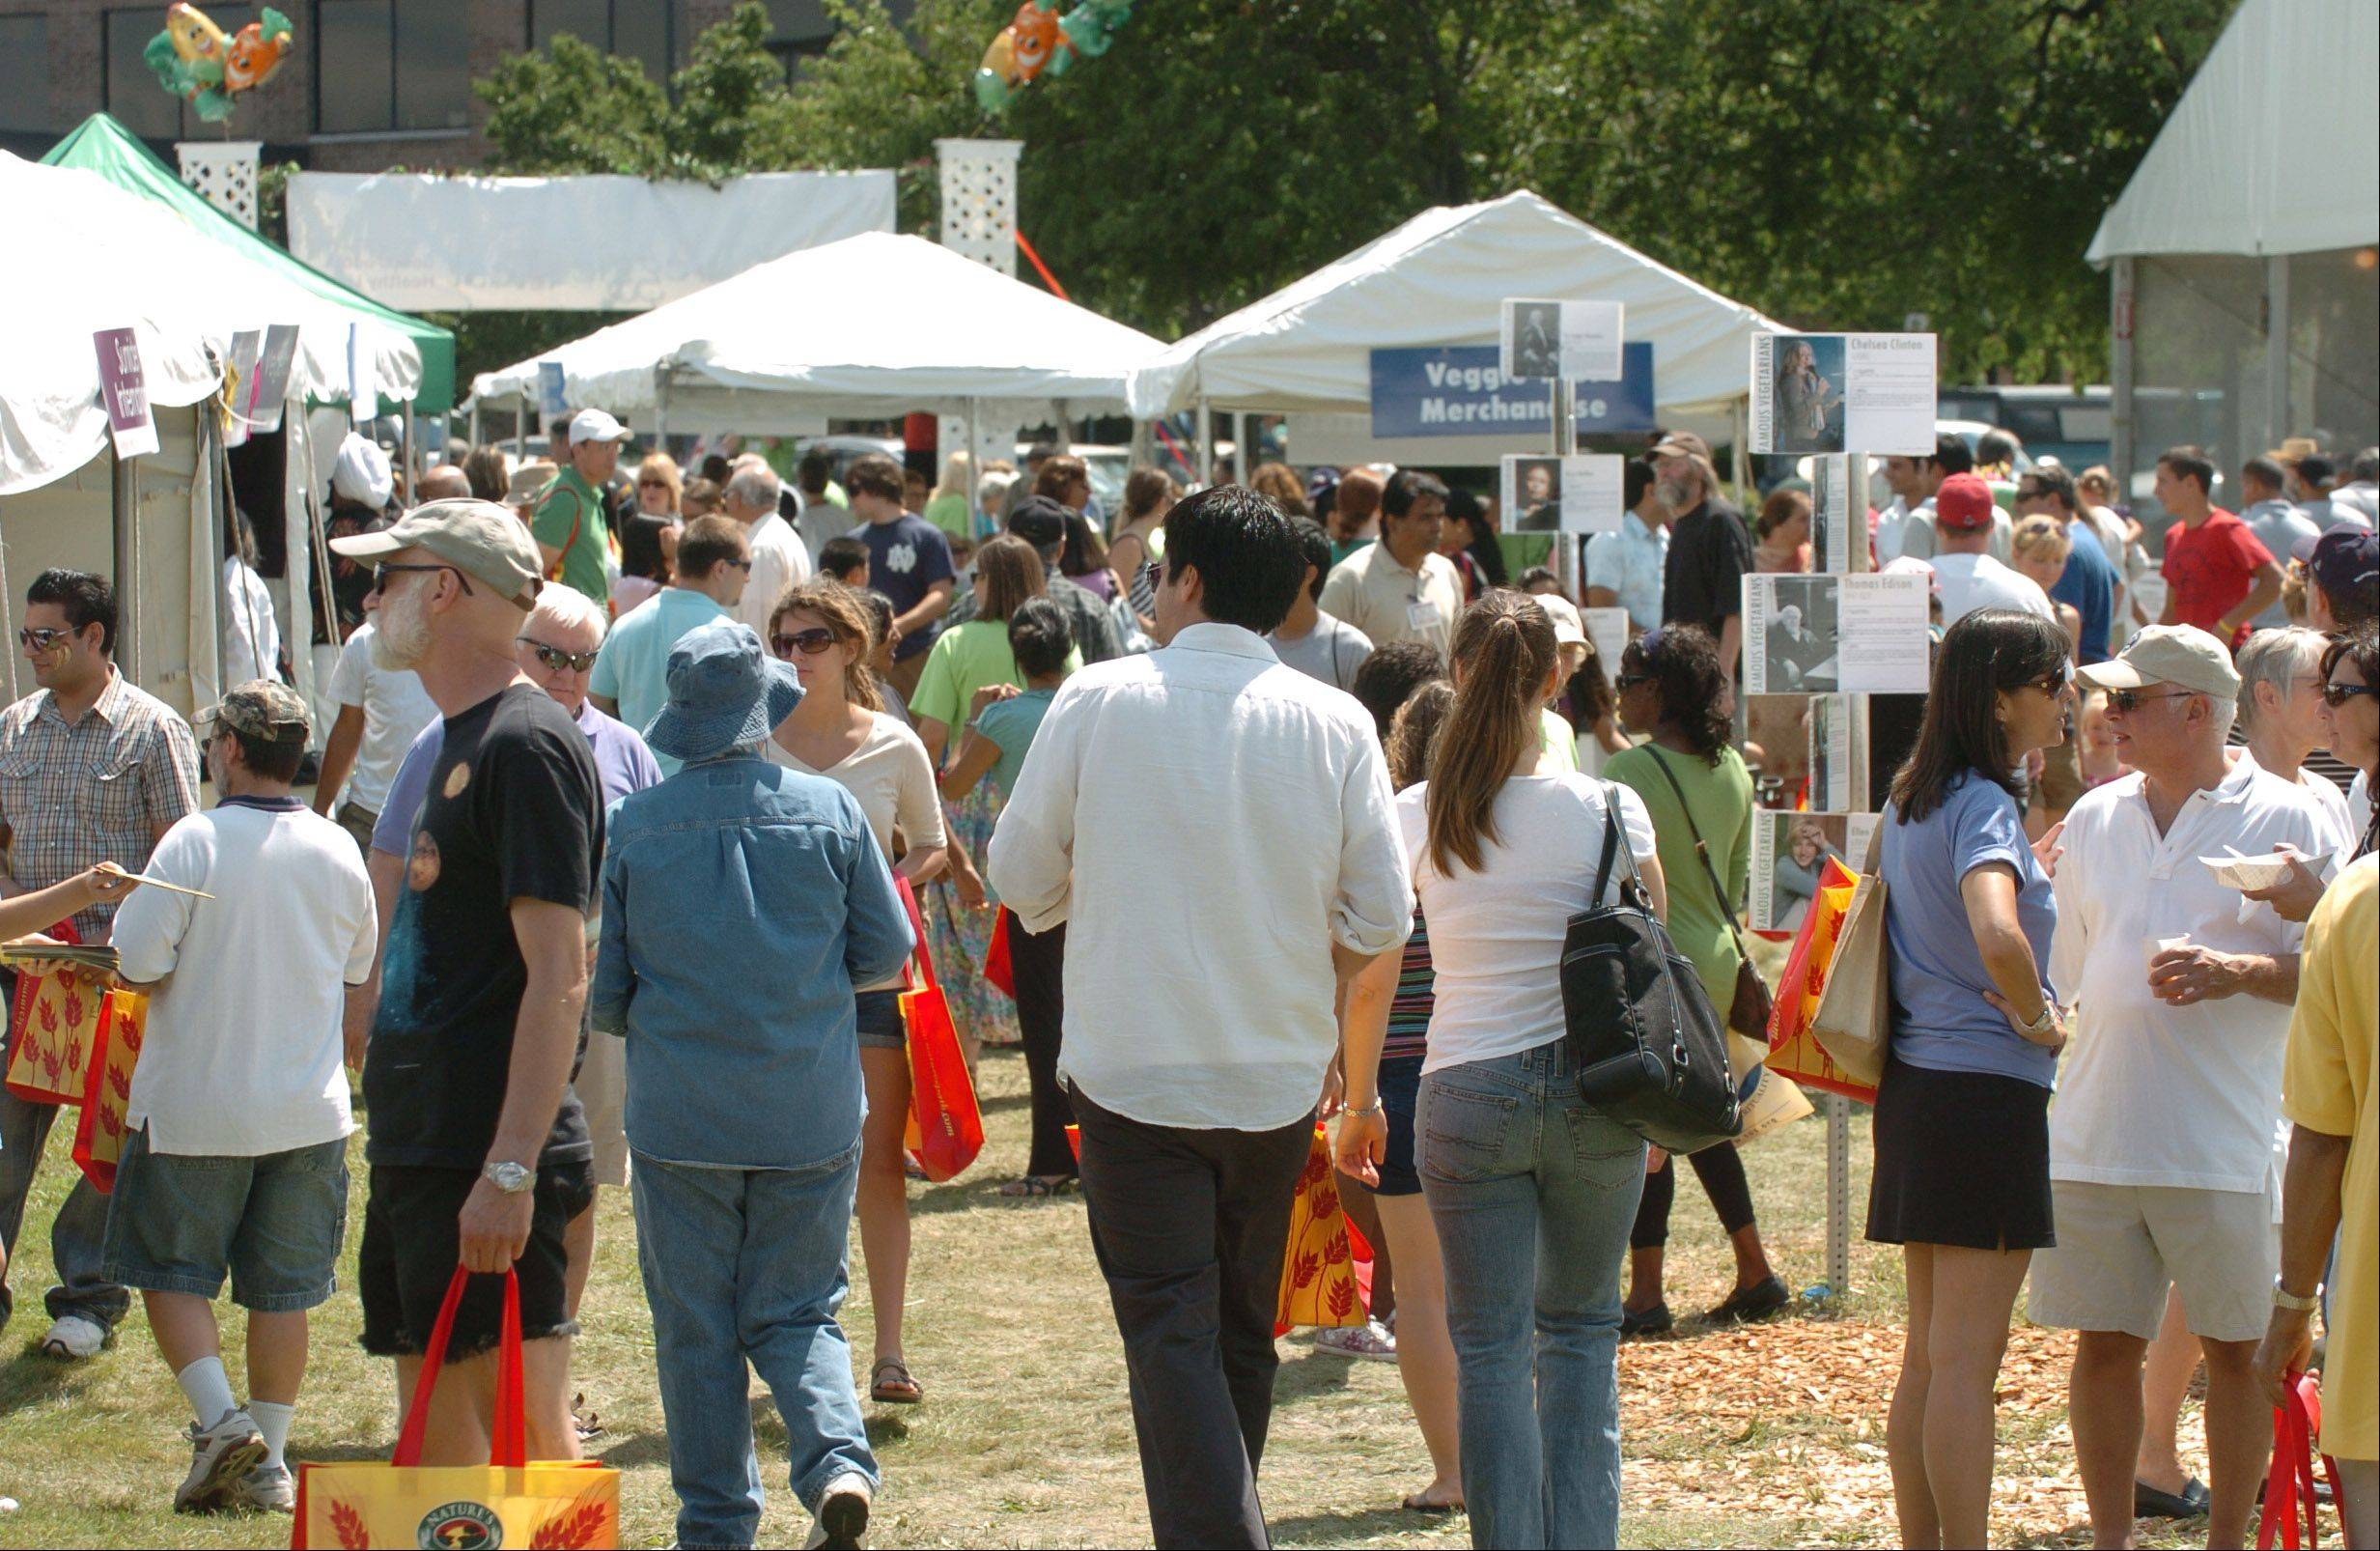 Last year's Veggie Fest in Naperville drew 25,000 people over two days, and organizers expect similarly large crowds at this year's festival from 11 a.m. to 8 p.m. Saturday and Sunday at Science of Spirituality Meditation Center, 4S175 Naperville Road.